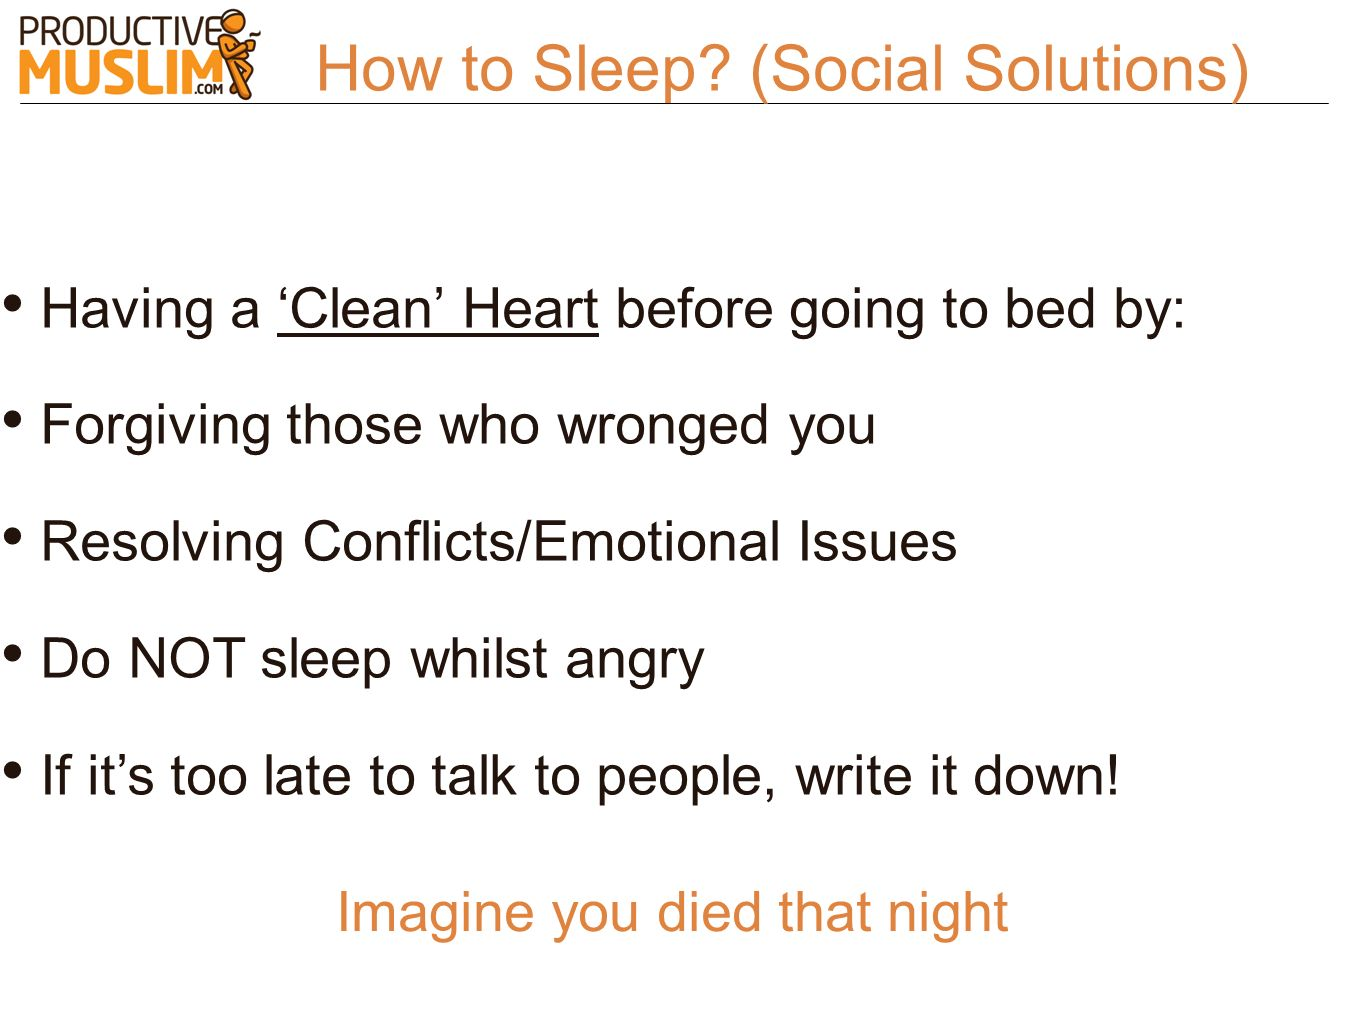 How to Sleep? (Social Solutions) Having a Clean Heart before going to bed by: Forgiving those who wronged you Resolving Conflicts/Emotional Issues Do